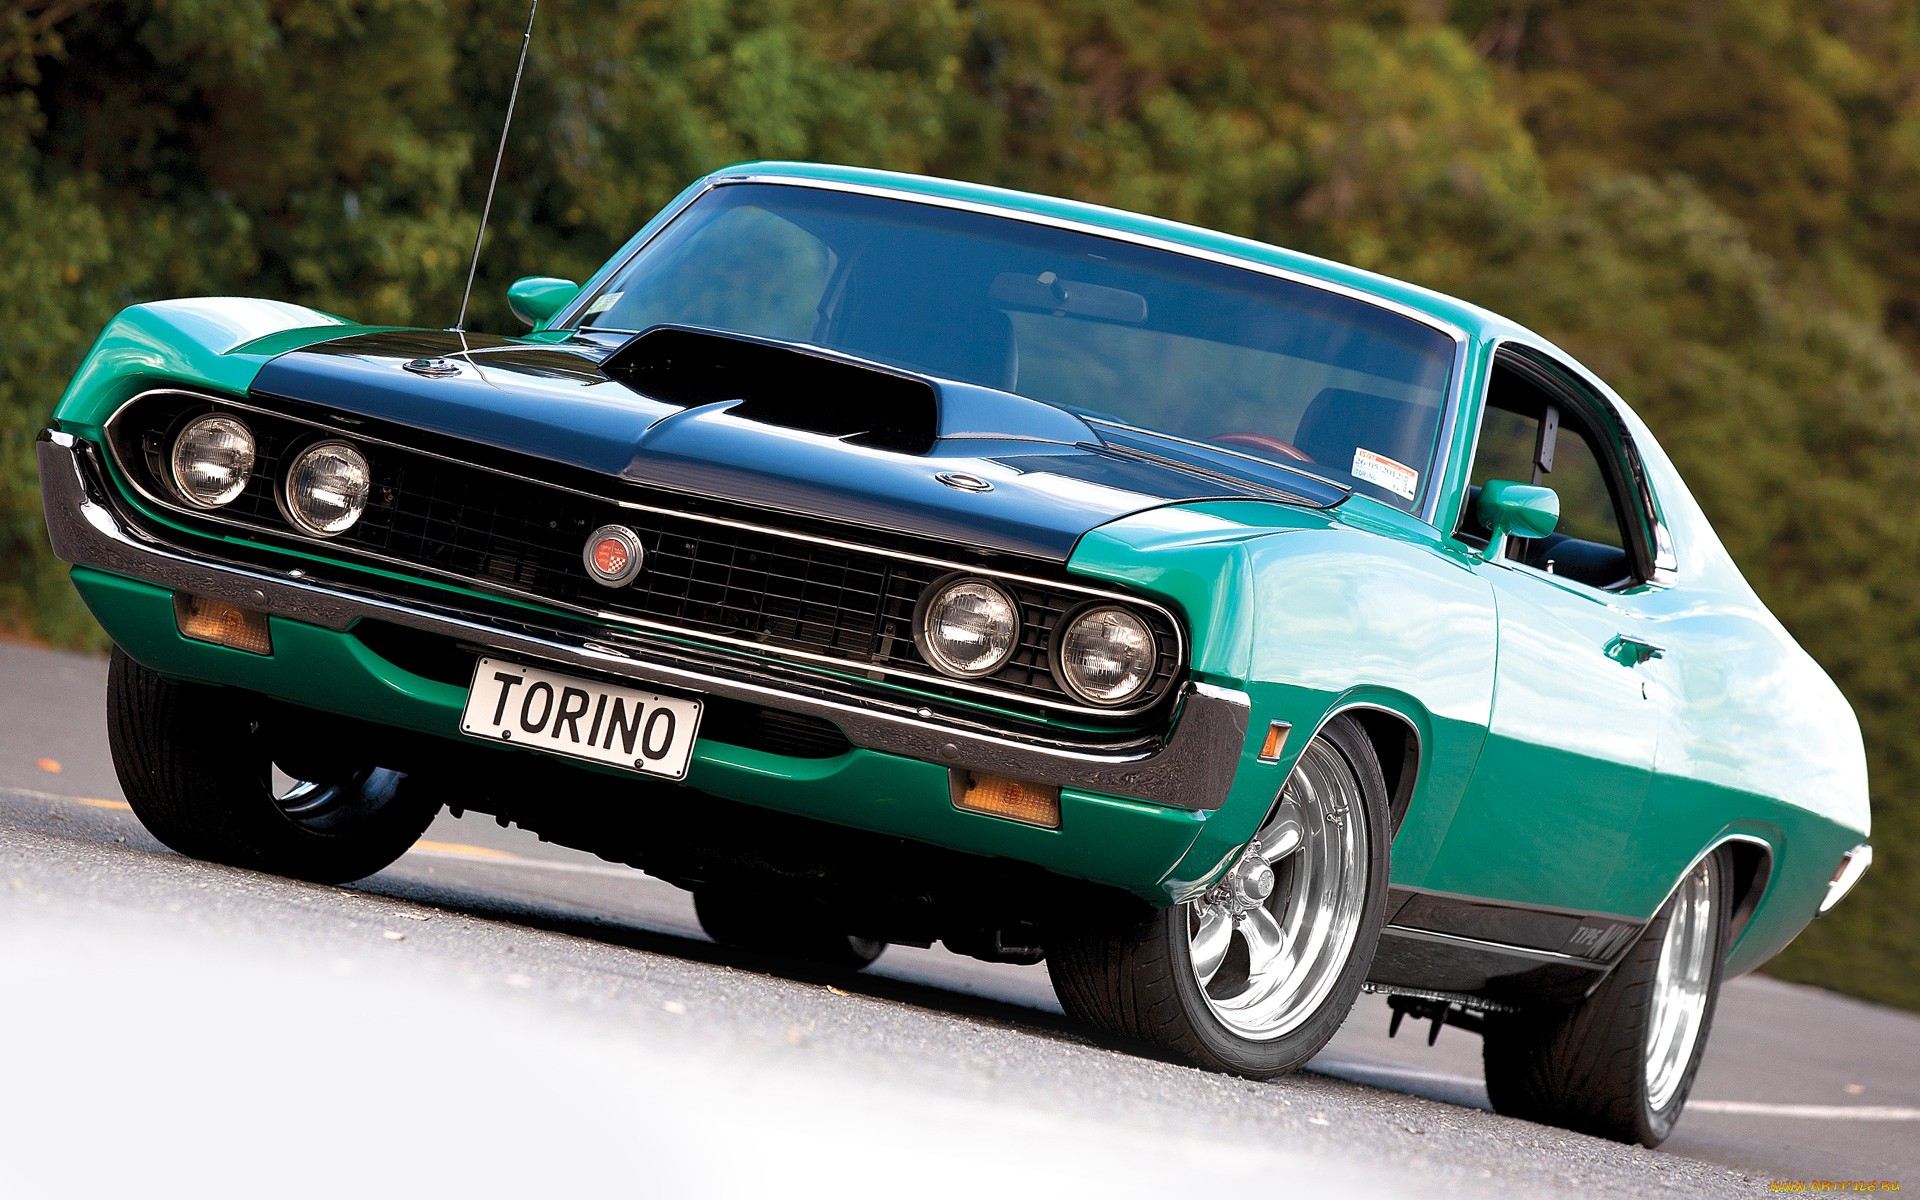 Ford gran torino classic muscle cars wallpaper | 1920x1200 | 43022 ...